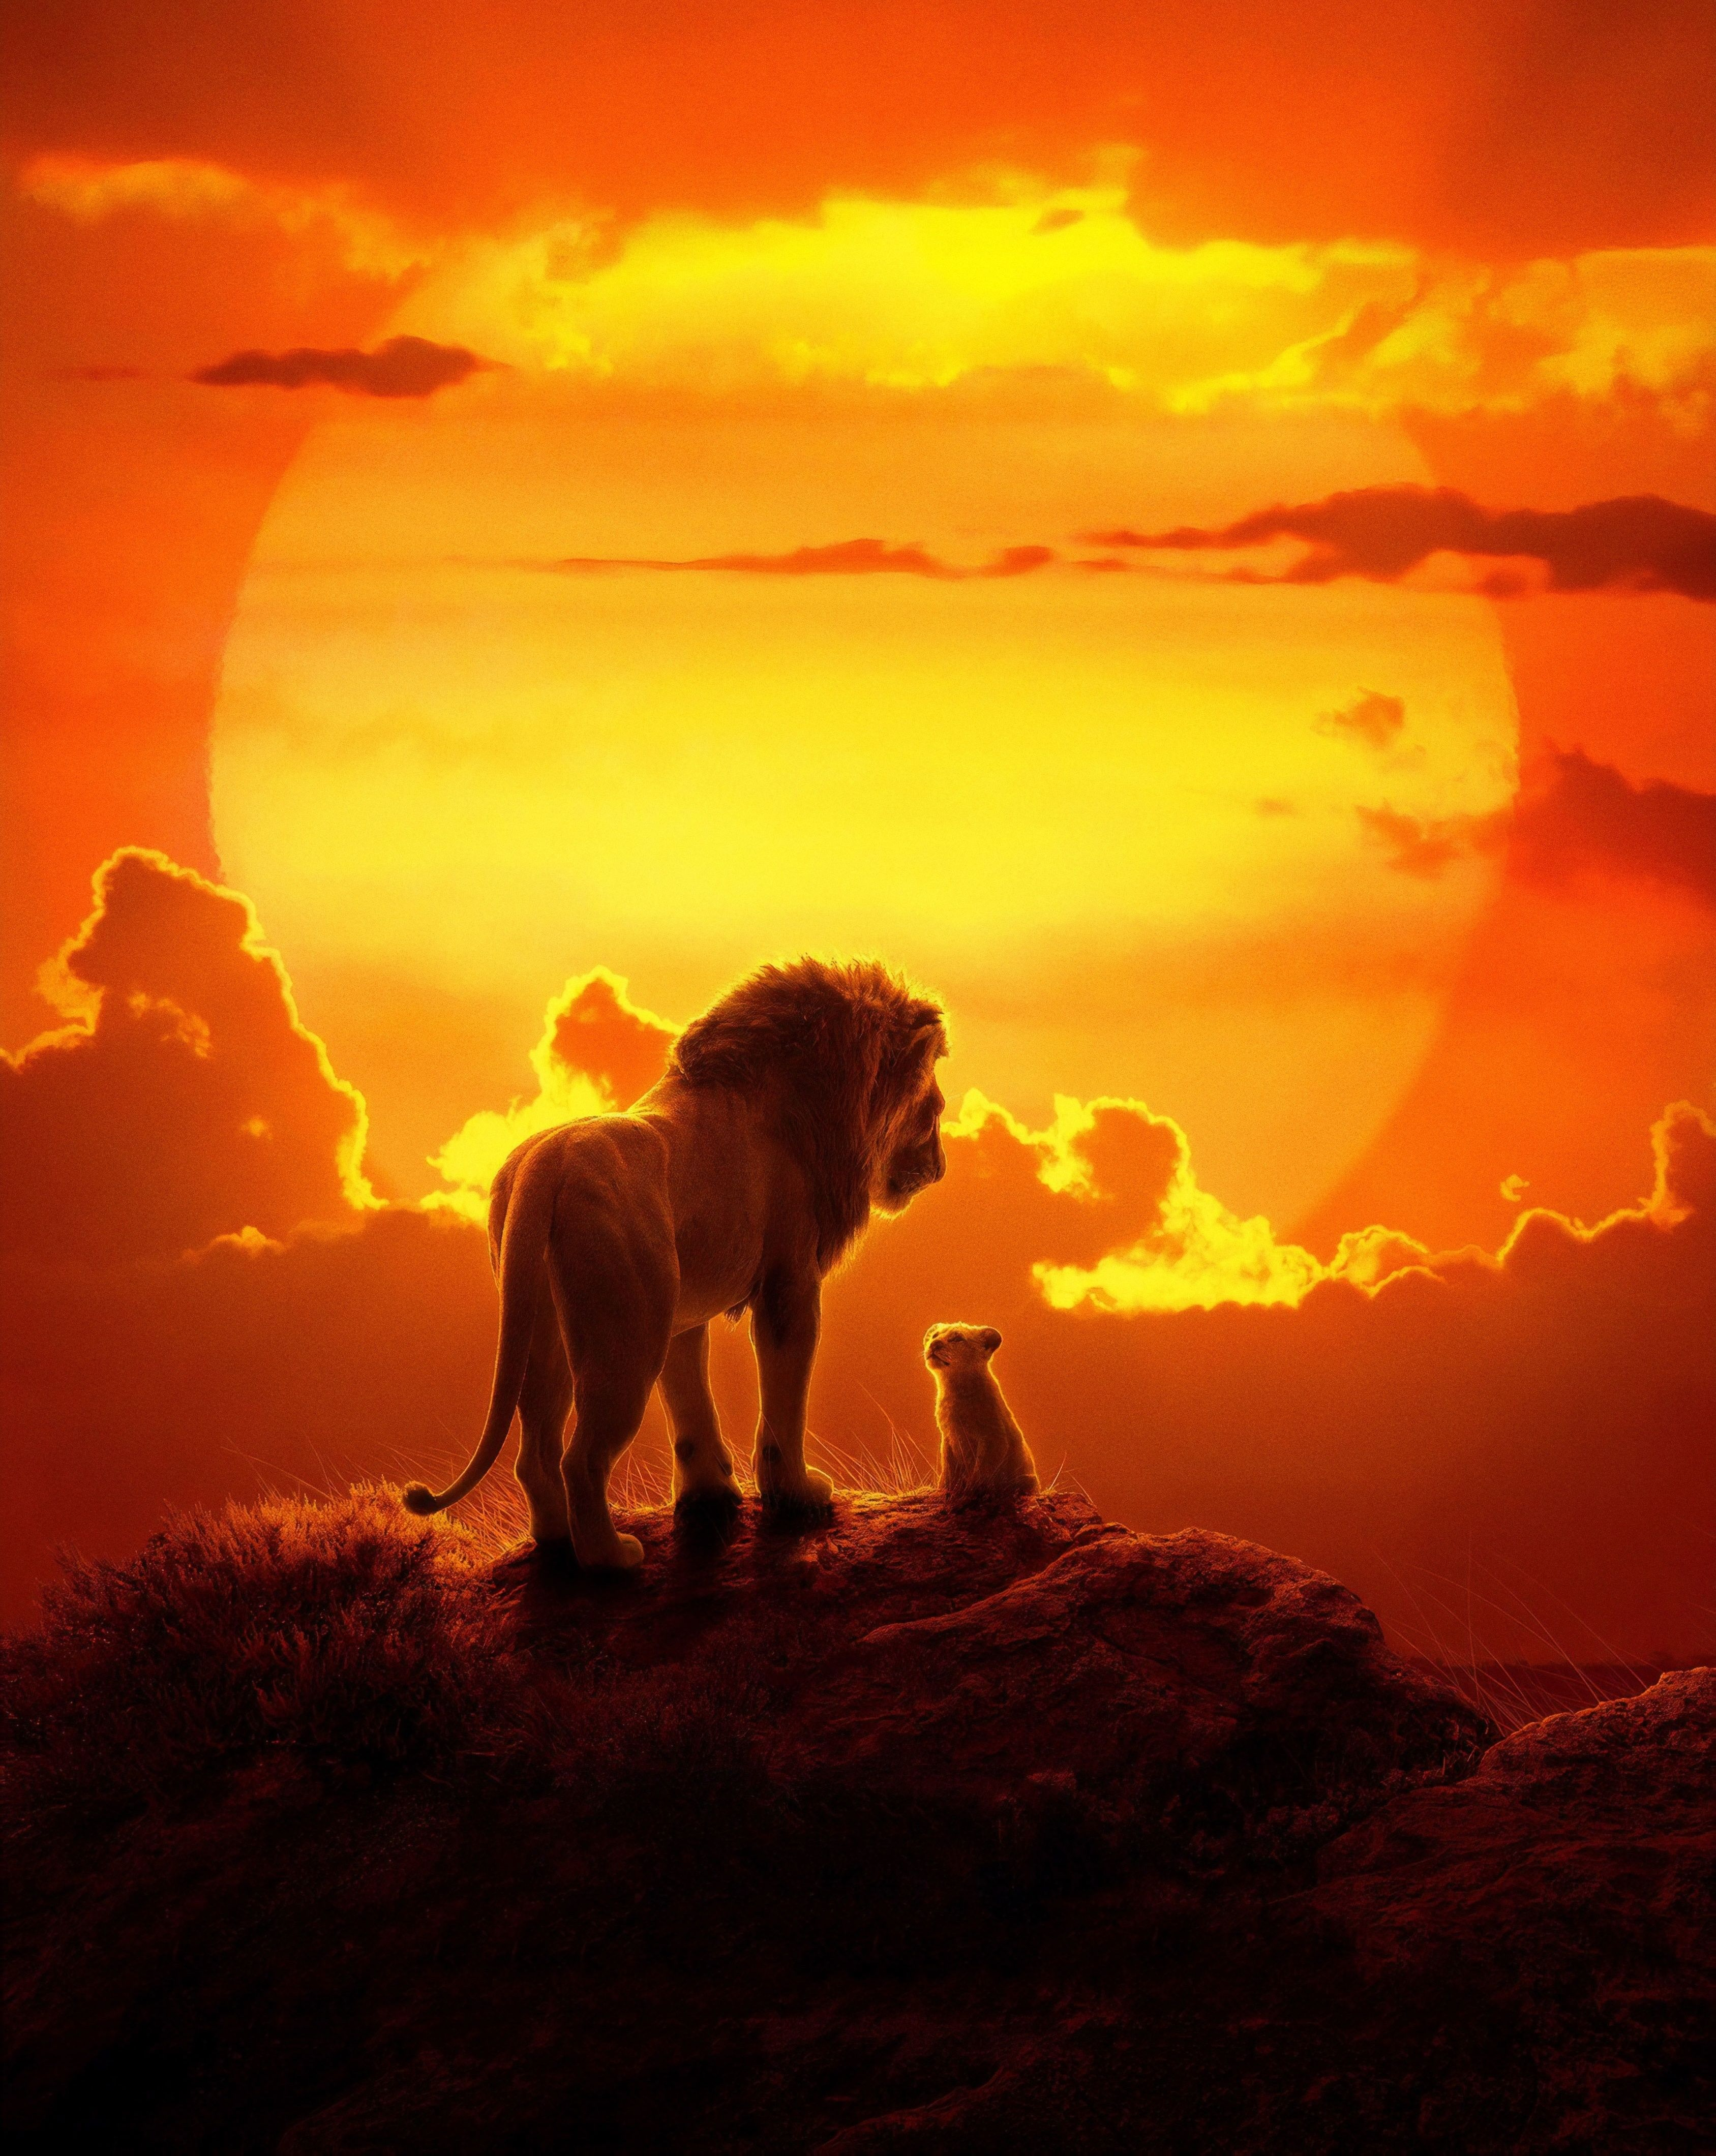 Downaload the lion king, lion and cub, 2019 movie wallpaper, 3375x4241